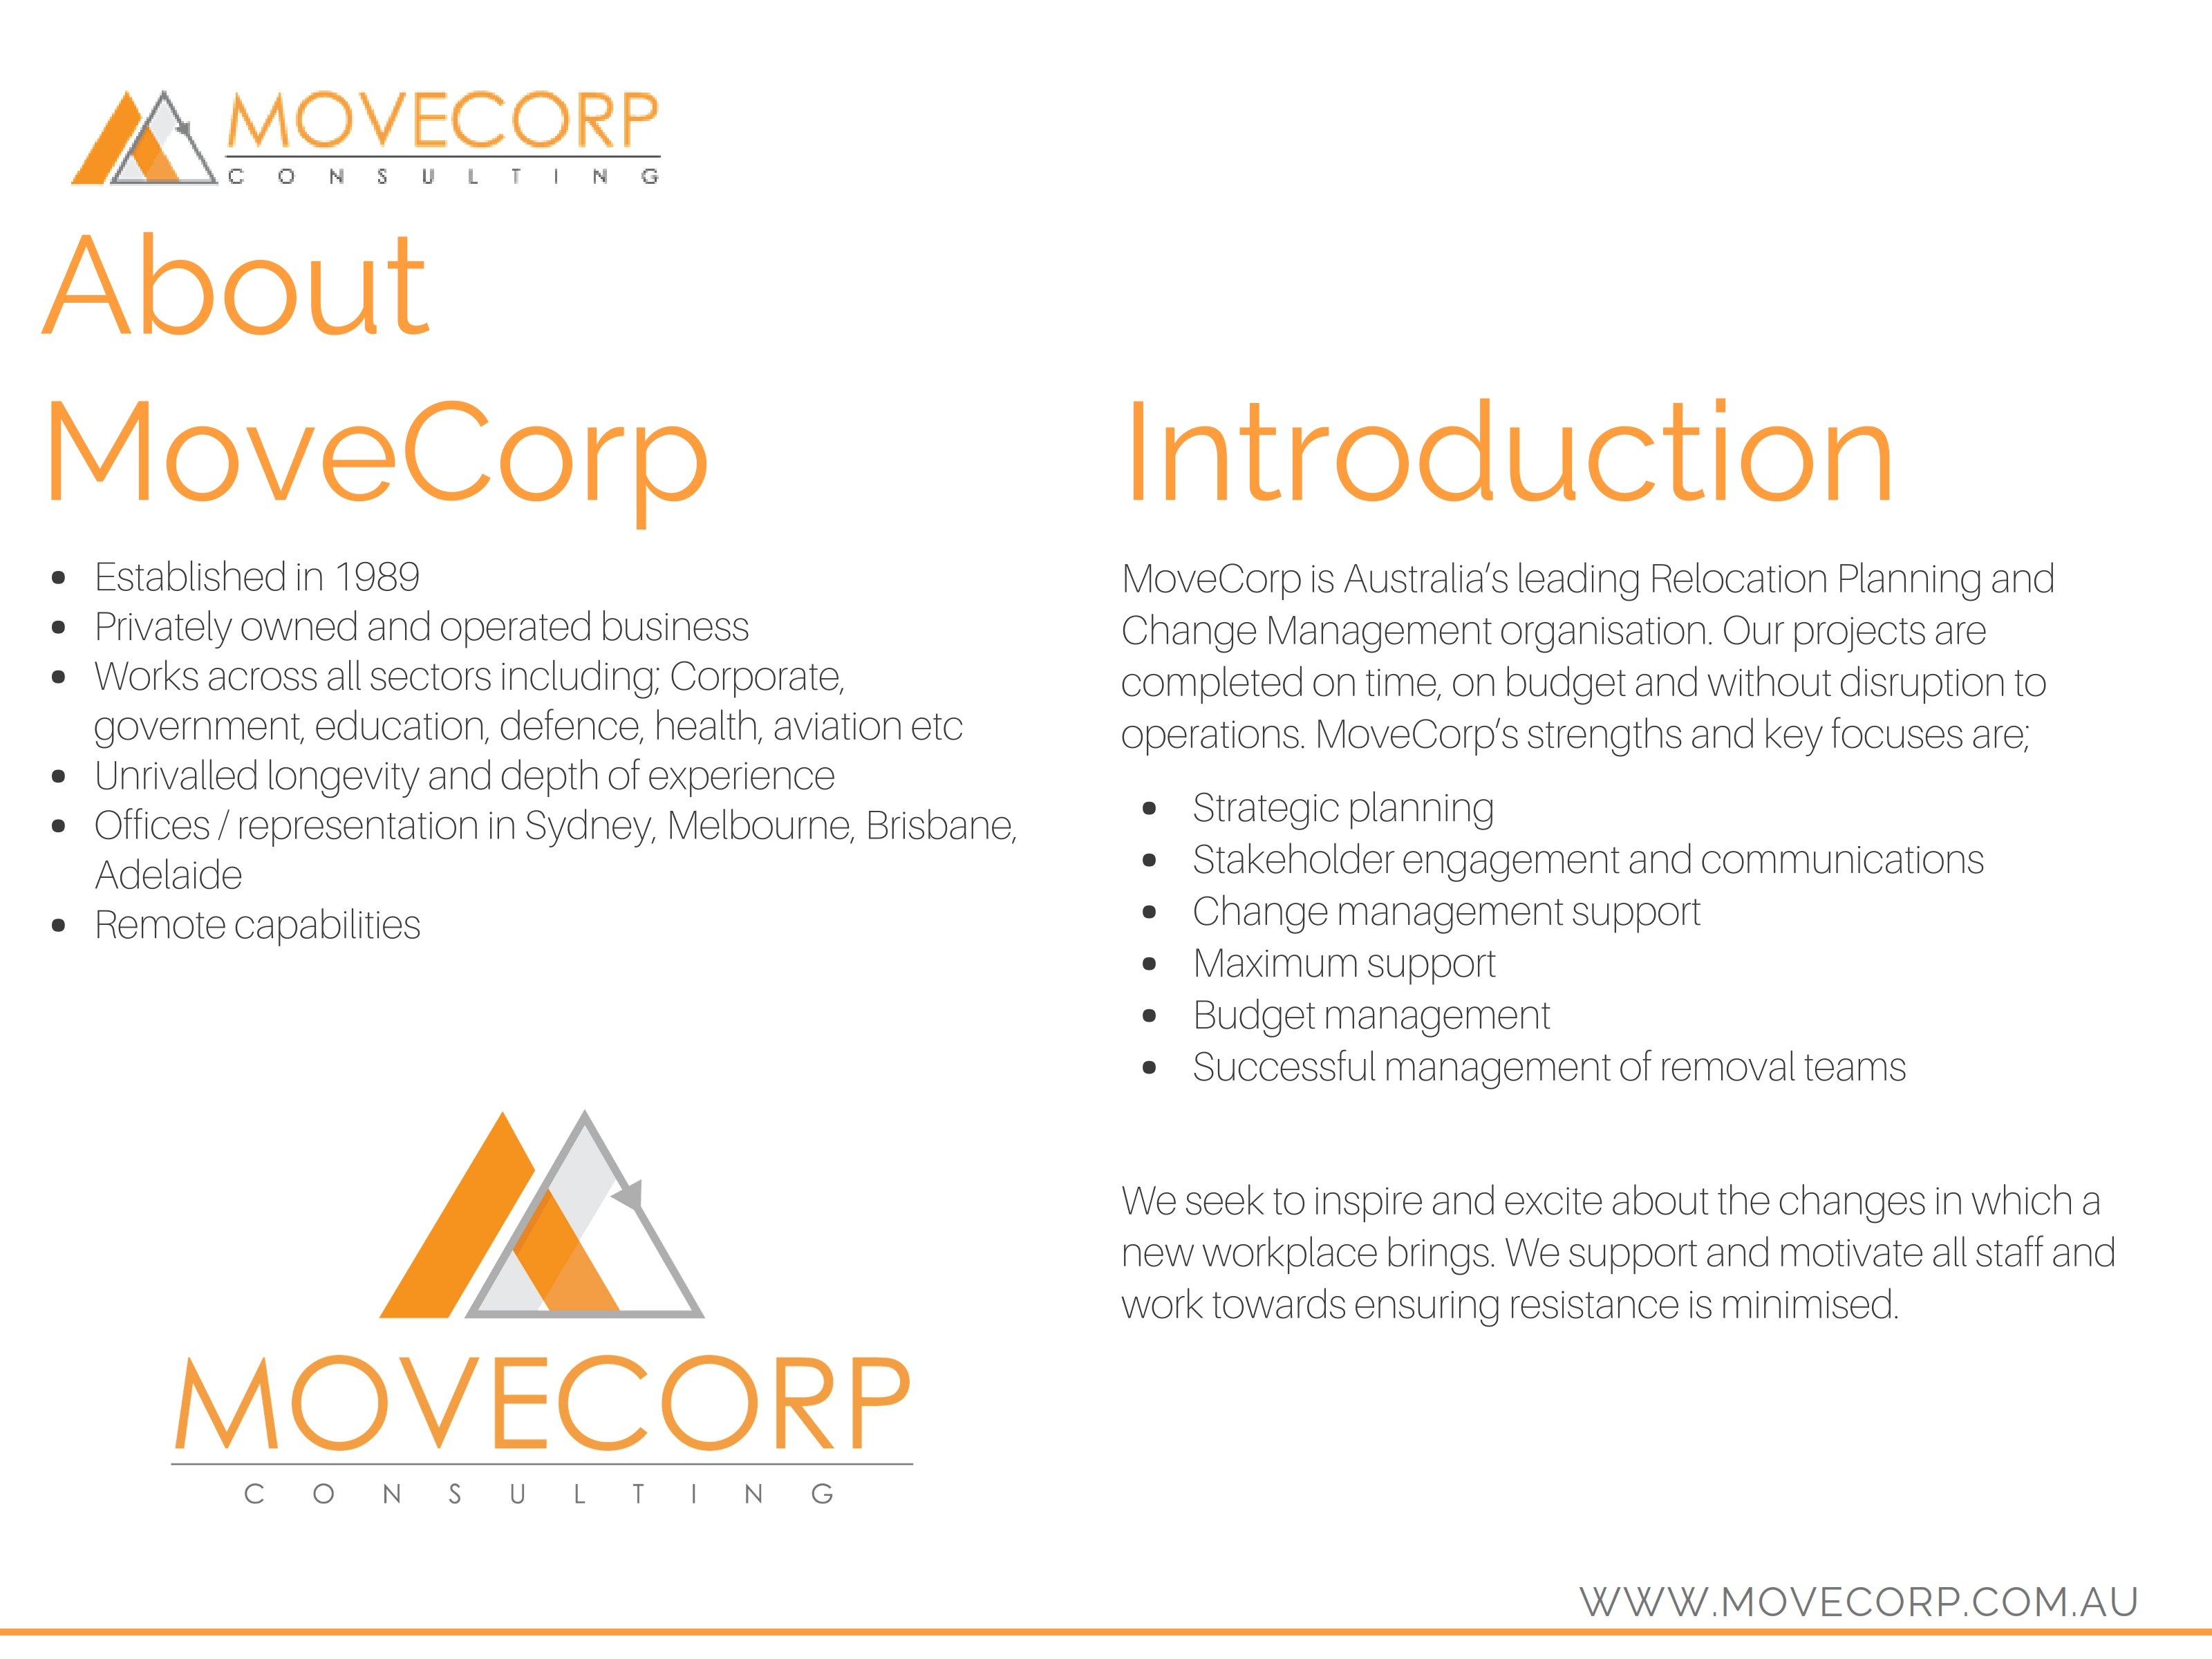 MoveCorp Relocation & Change Methodology (1)_002